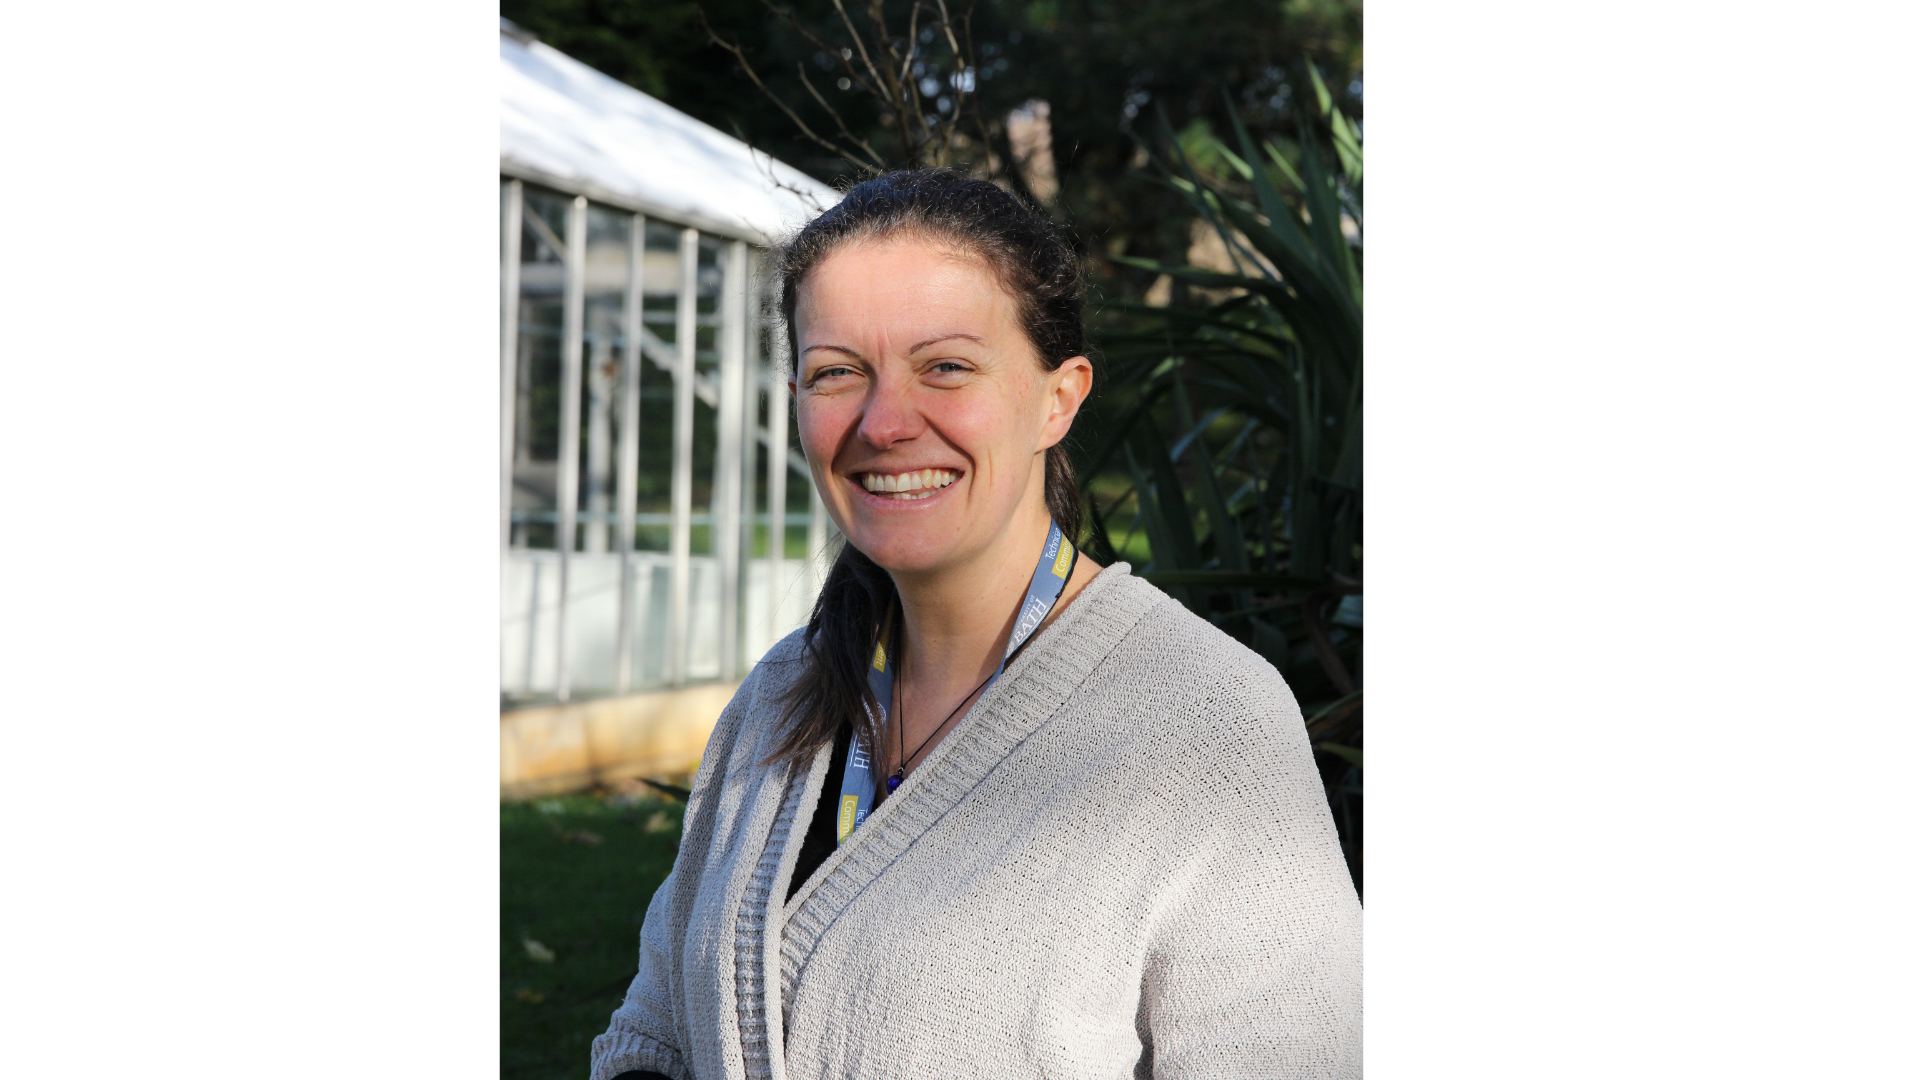 Marianne Harkins, Technical Manager, Faculty of Science